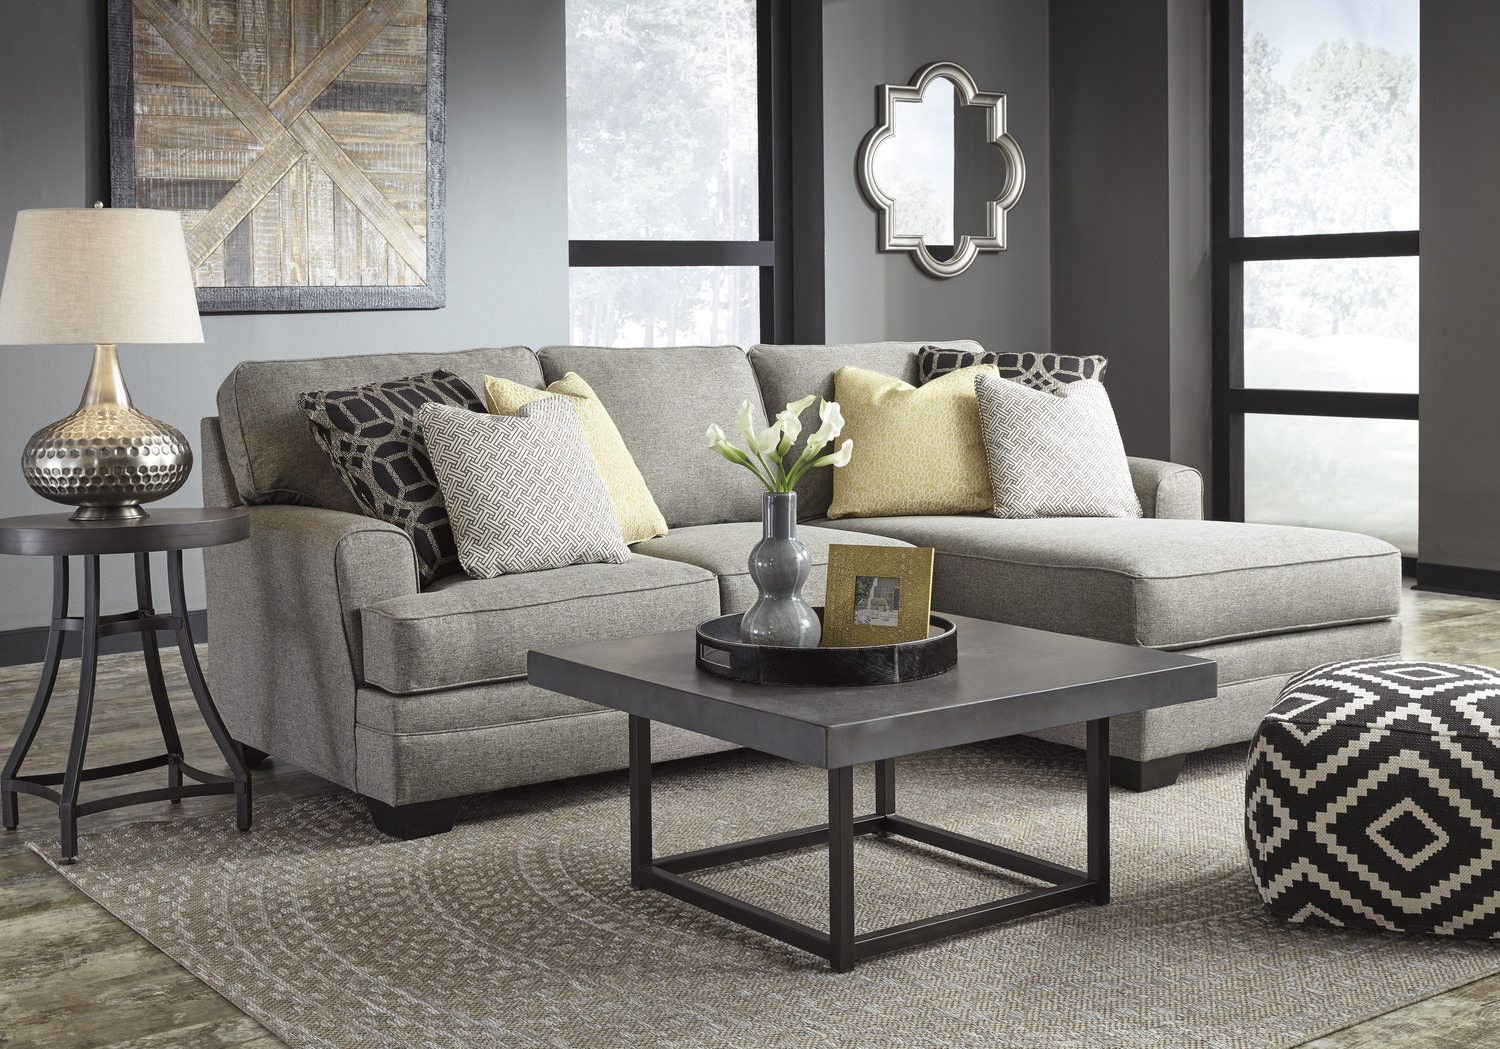 City 2 Piece Modular Sectional | Livingroom layout, Cheap ... on Outdoor Living Shops Near Me id=59550